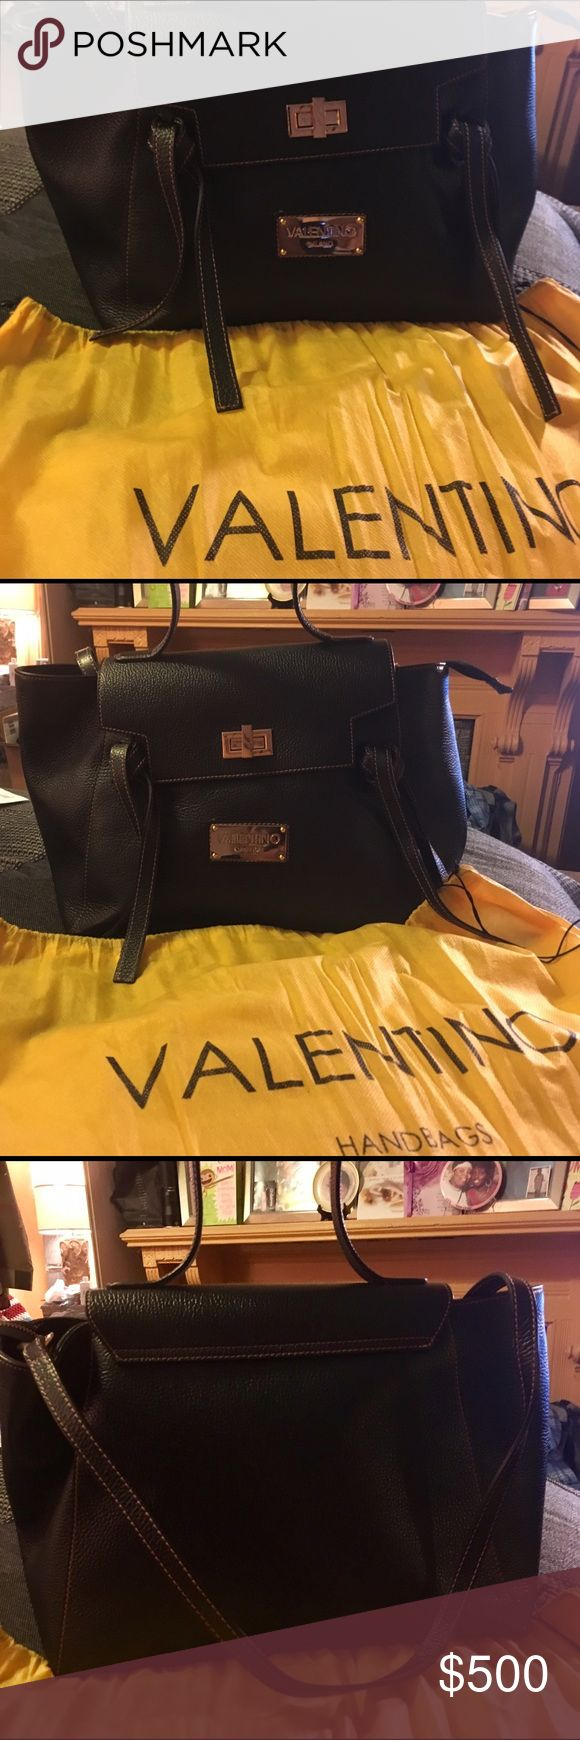 Leather Valentino Bag Good condition. Great leather. Zipper compartment and pockets inside. Slight loss of shape and few scratches on gold hardware twist. Handle and detachable strap. Great everyday bag or anything else! Mario Valentino Bags Totes